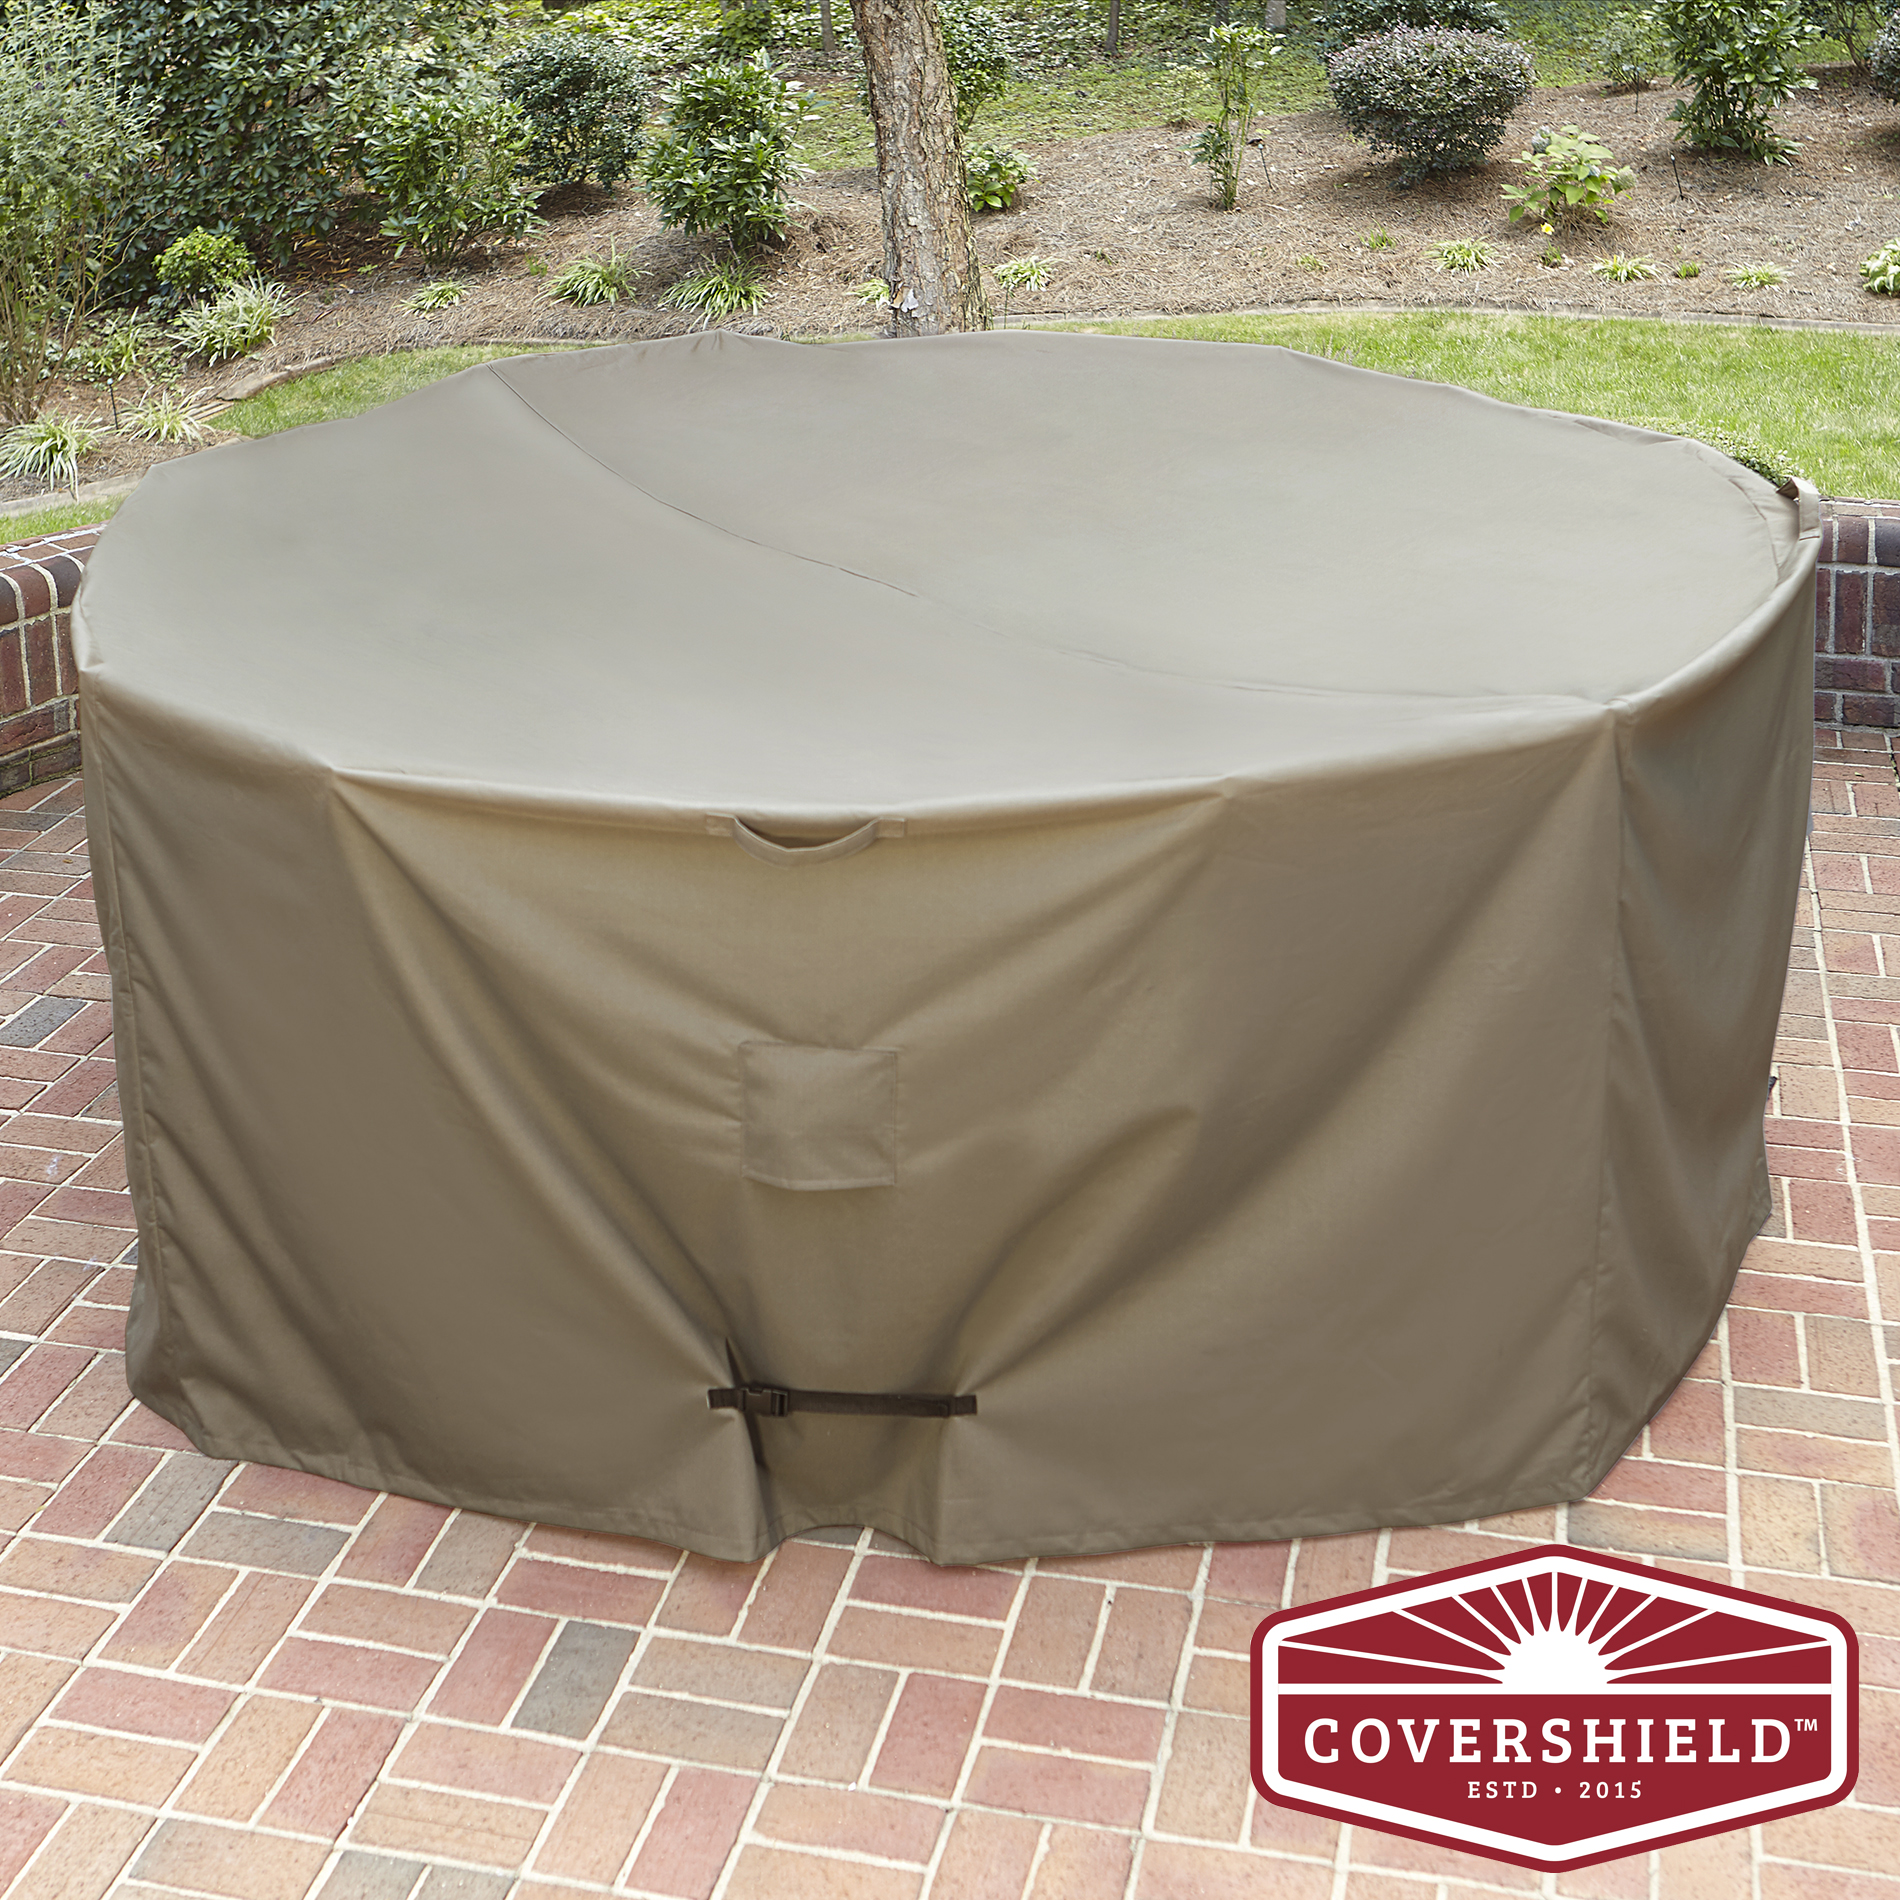 Covershield Oversized Round Furniture Cover Elite